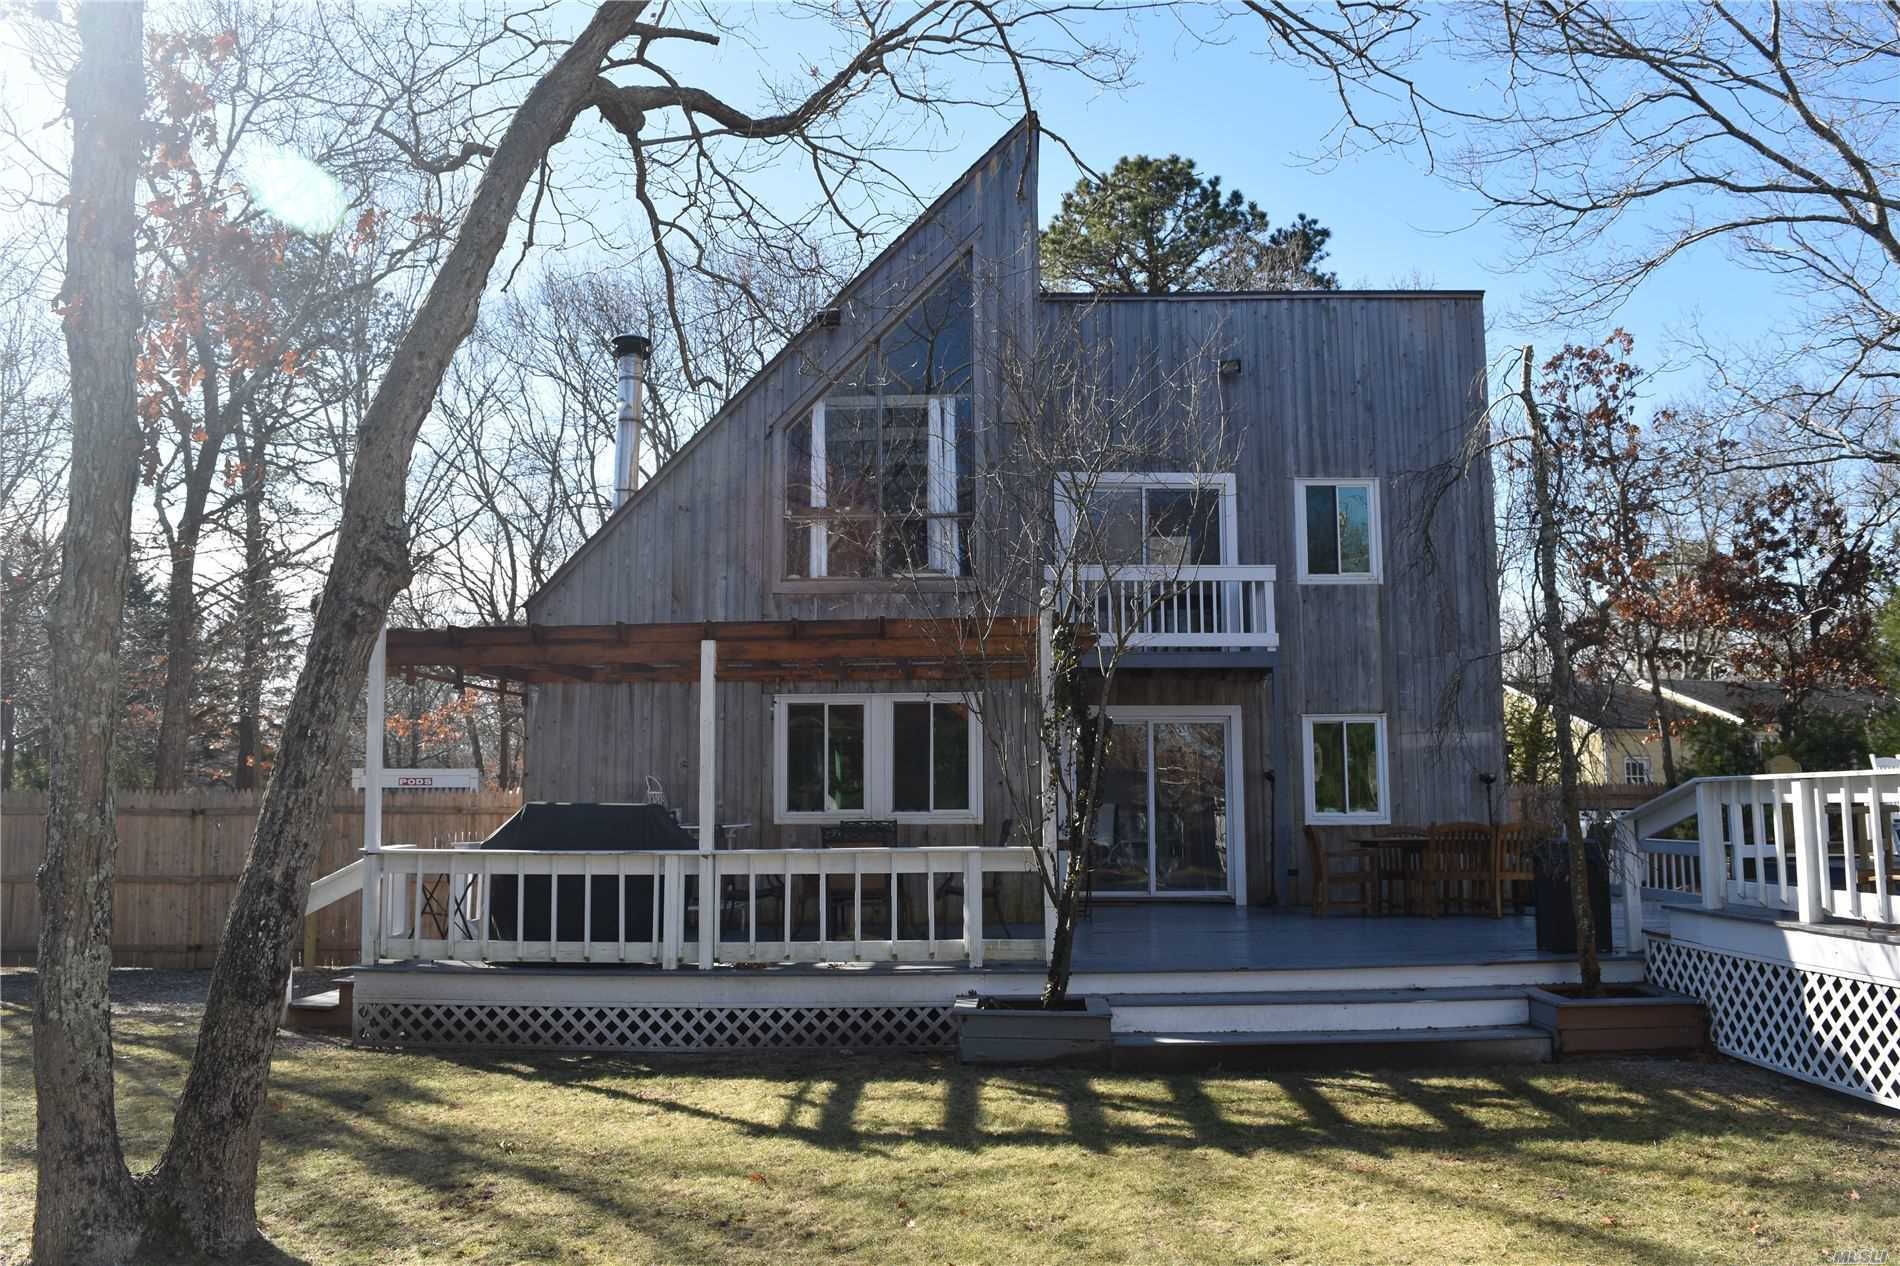 14 Chestnut Ln, E. Quogue, NY 11942 now has a new price of $599,000!